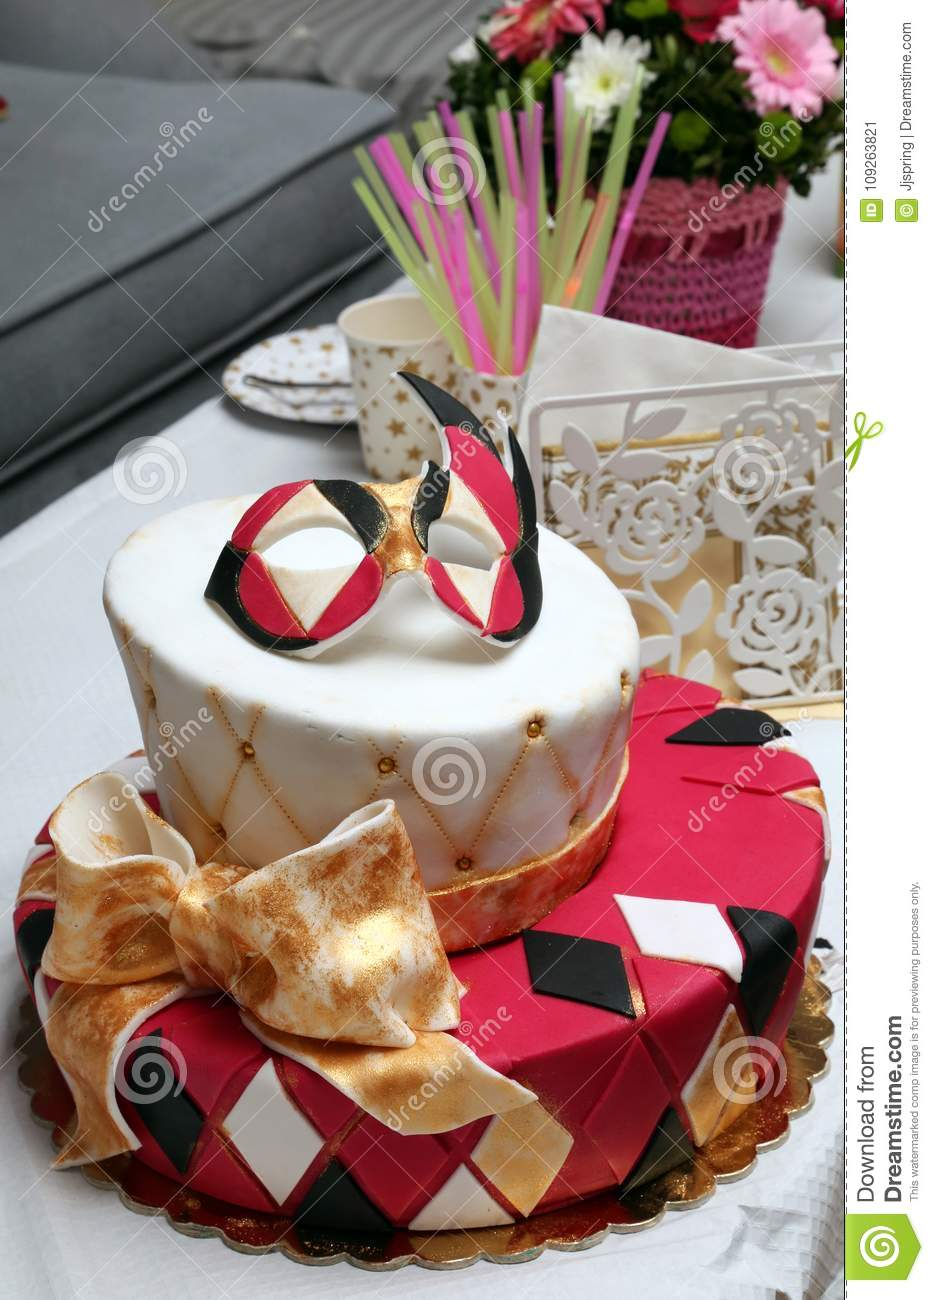 Birthday Cake Decorated With Mask And Bow Stock Image Image Of